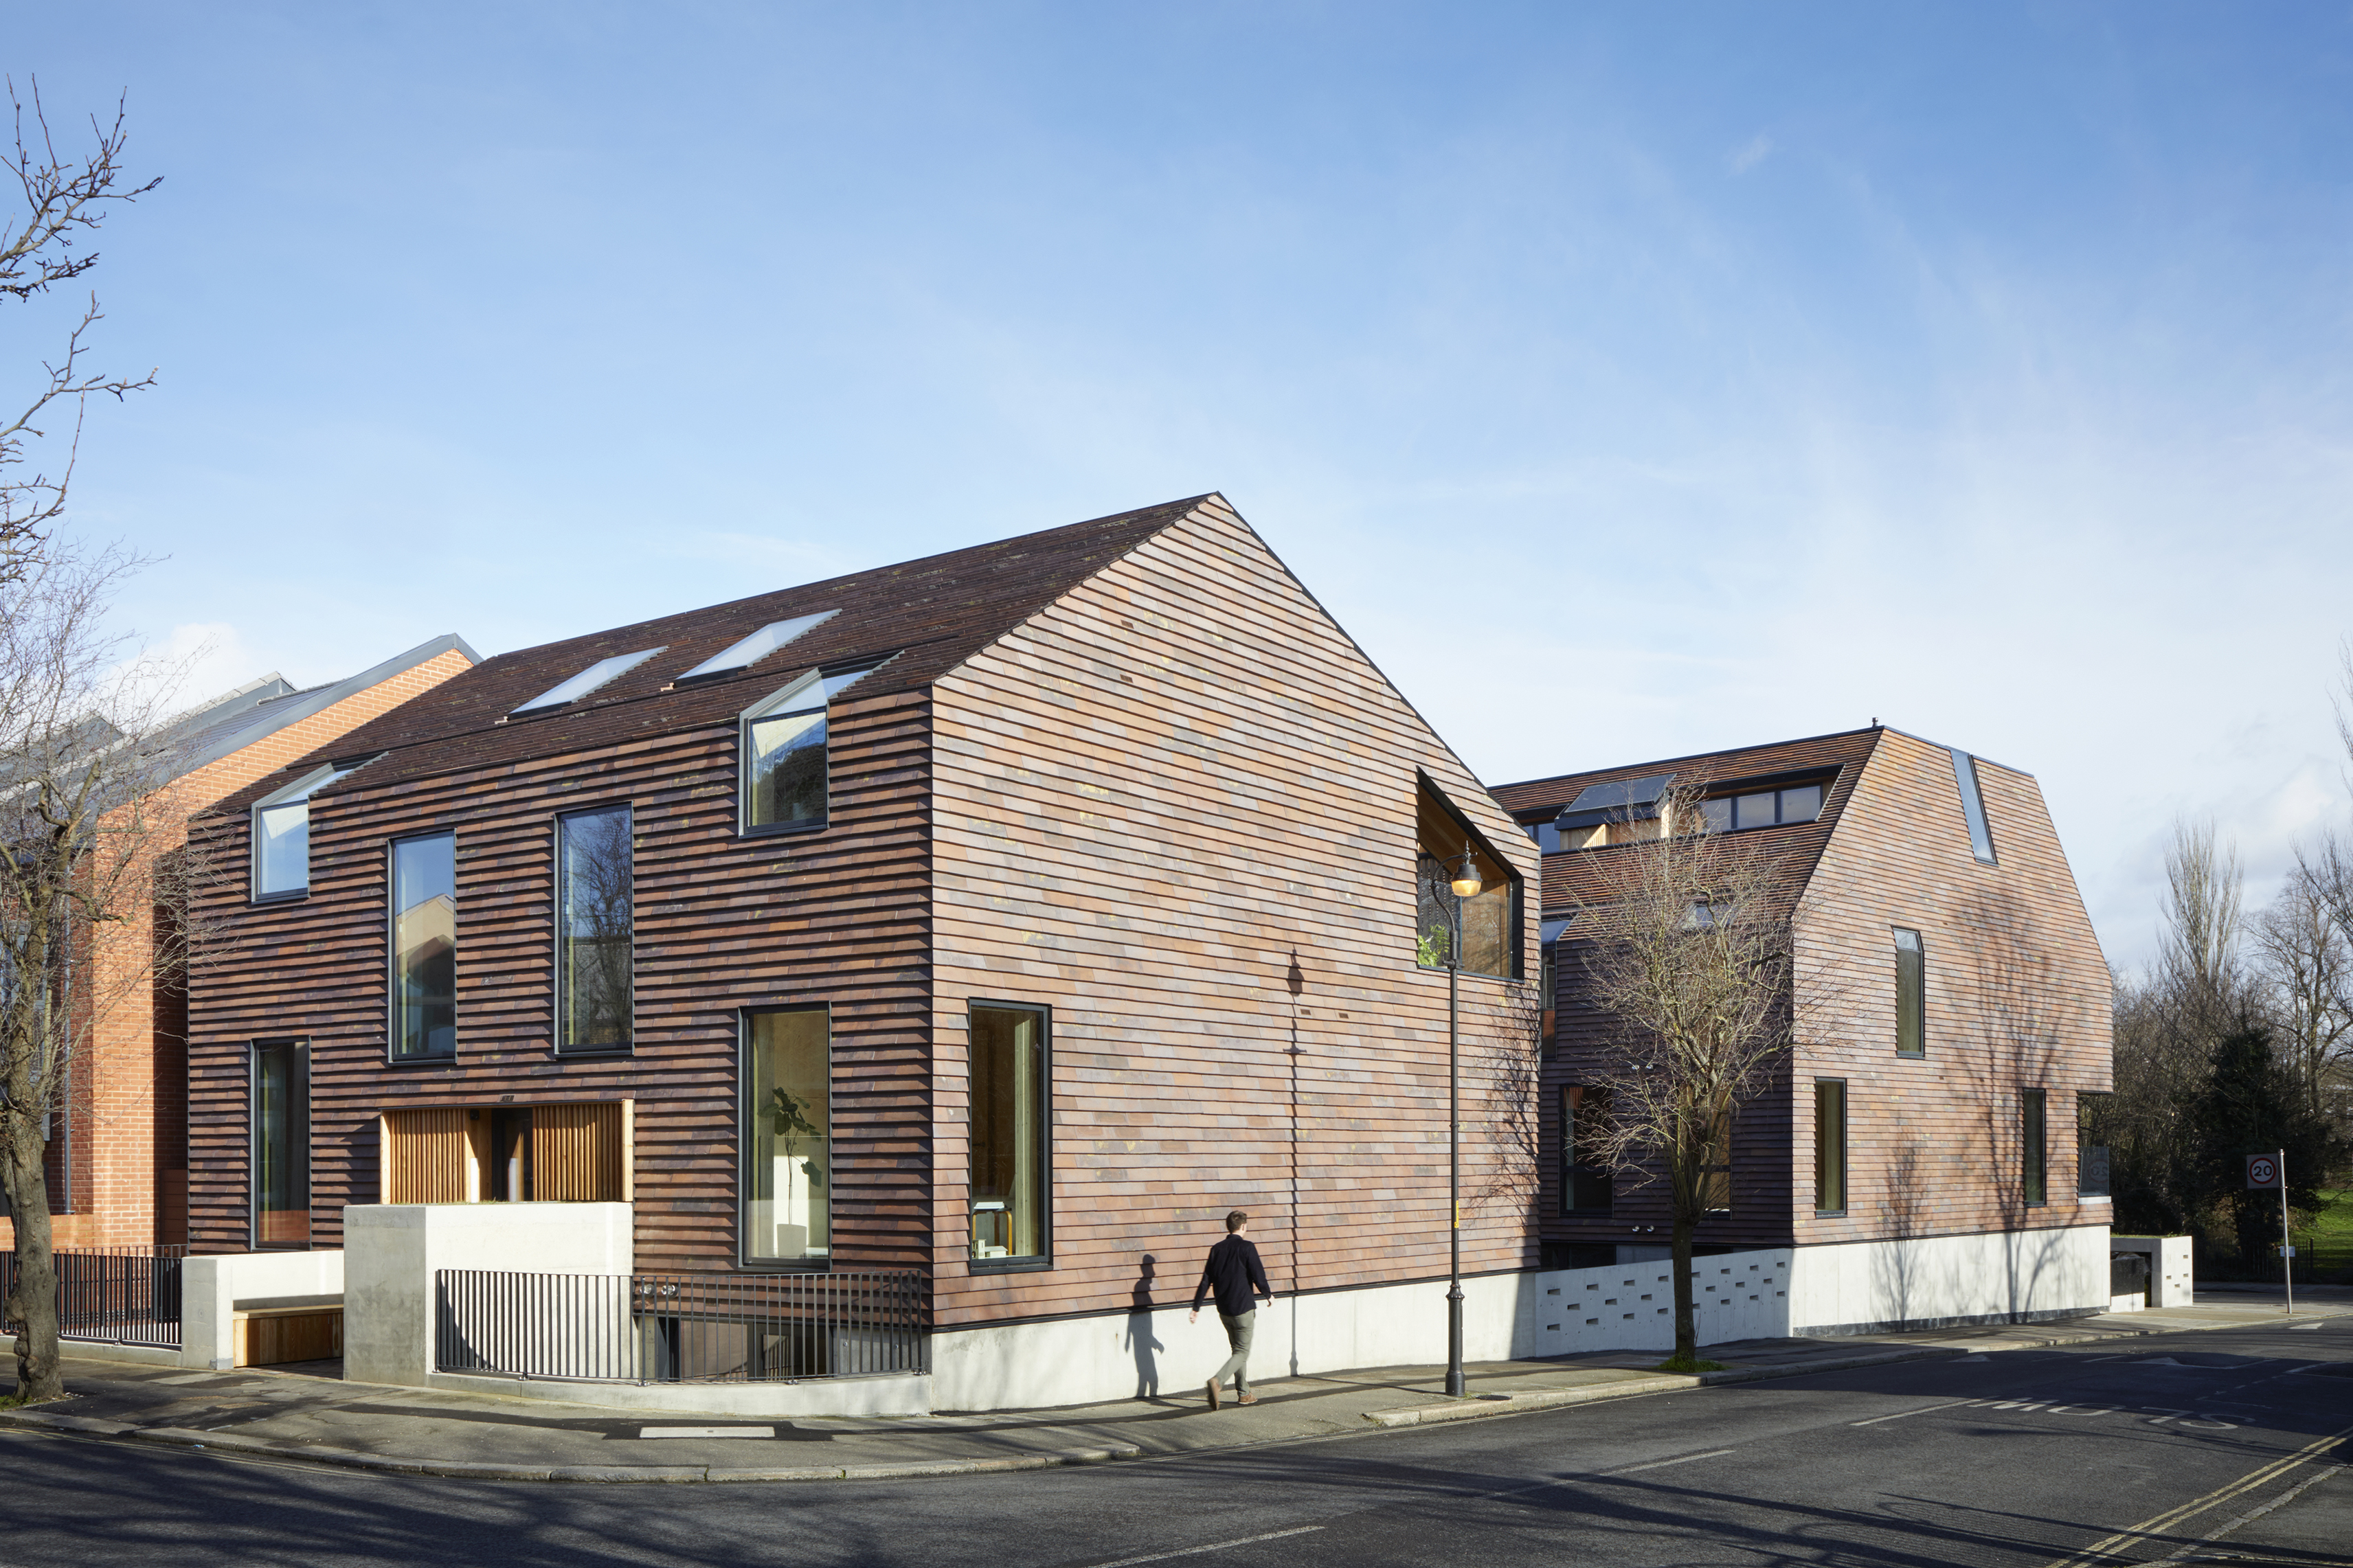 <p>Both apartment blocks are clad with red clay shingles. © Jack Hobhouse</p>